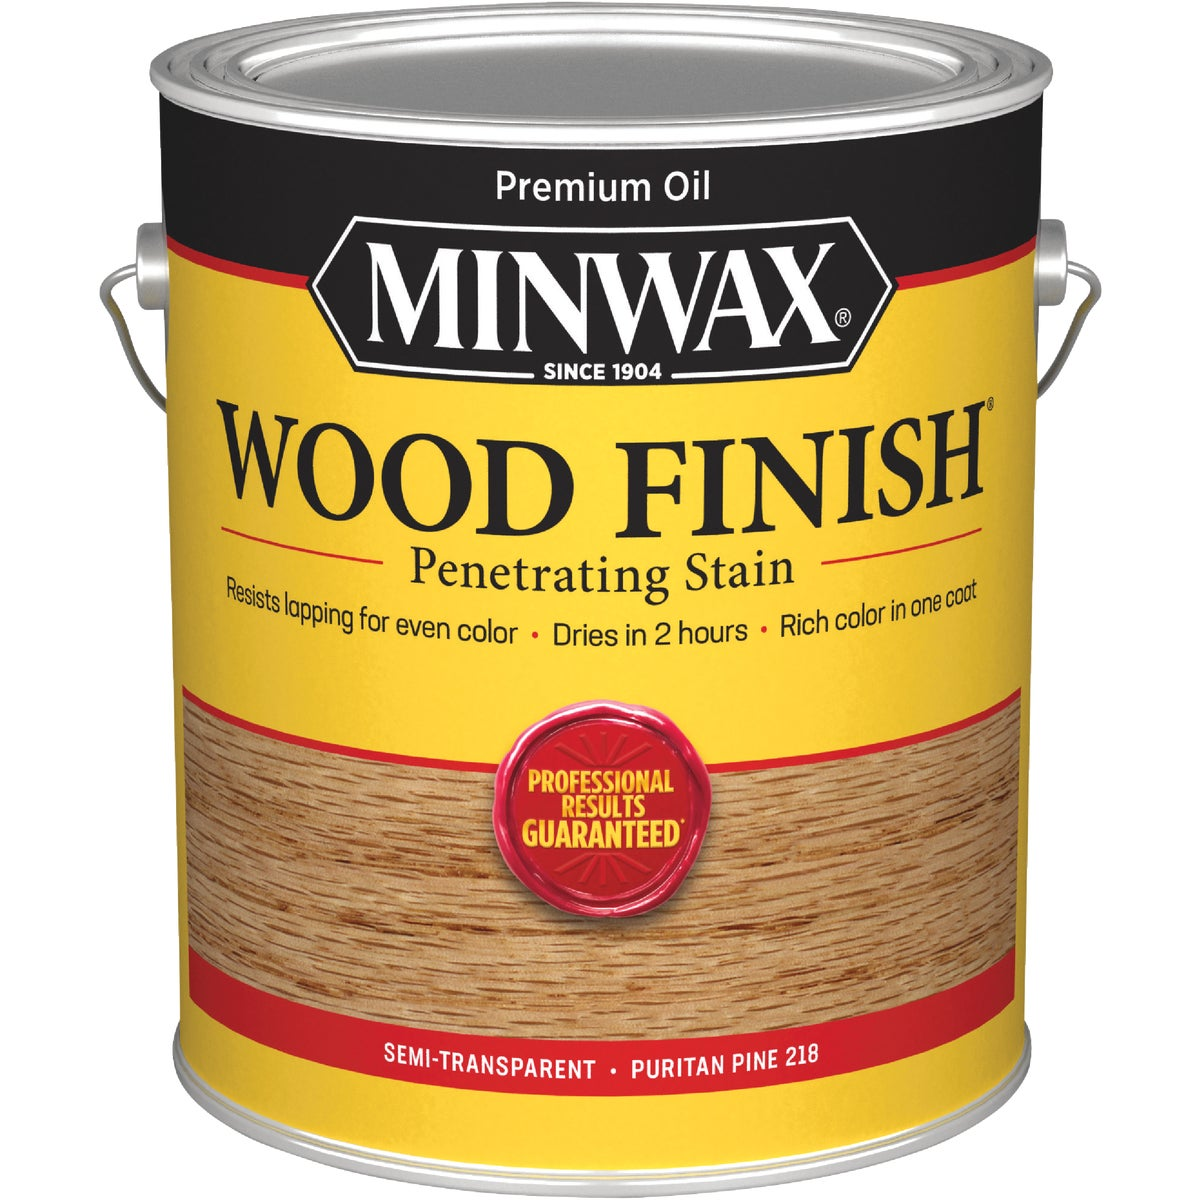 PURITAN PINE WOOD STAIN - 71003 by Minwax Company